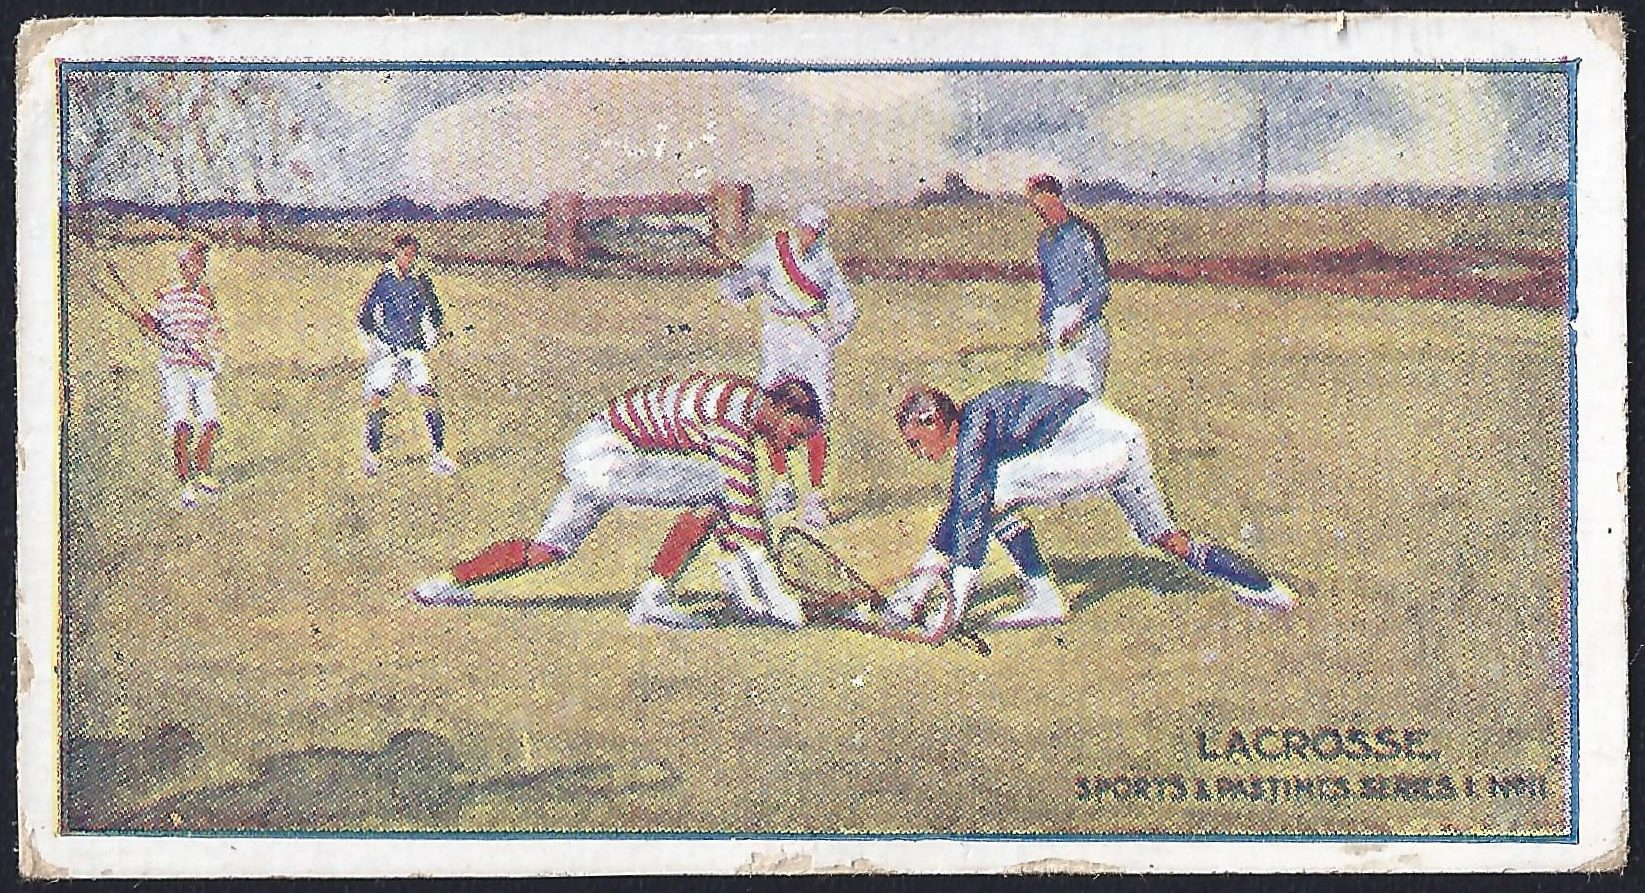 The Lacrosse Card Archive